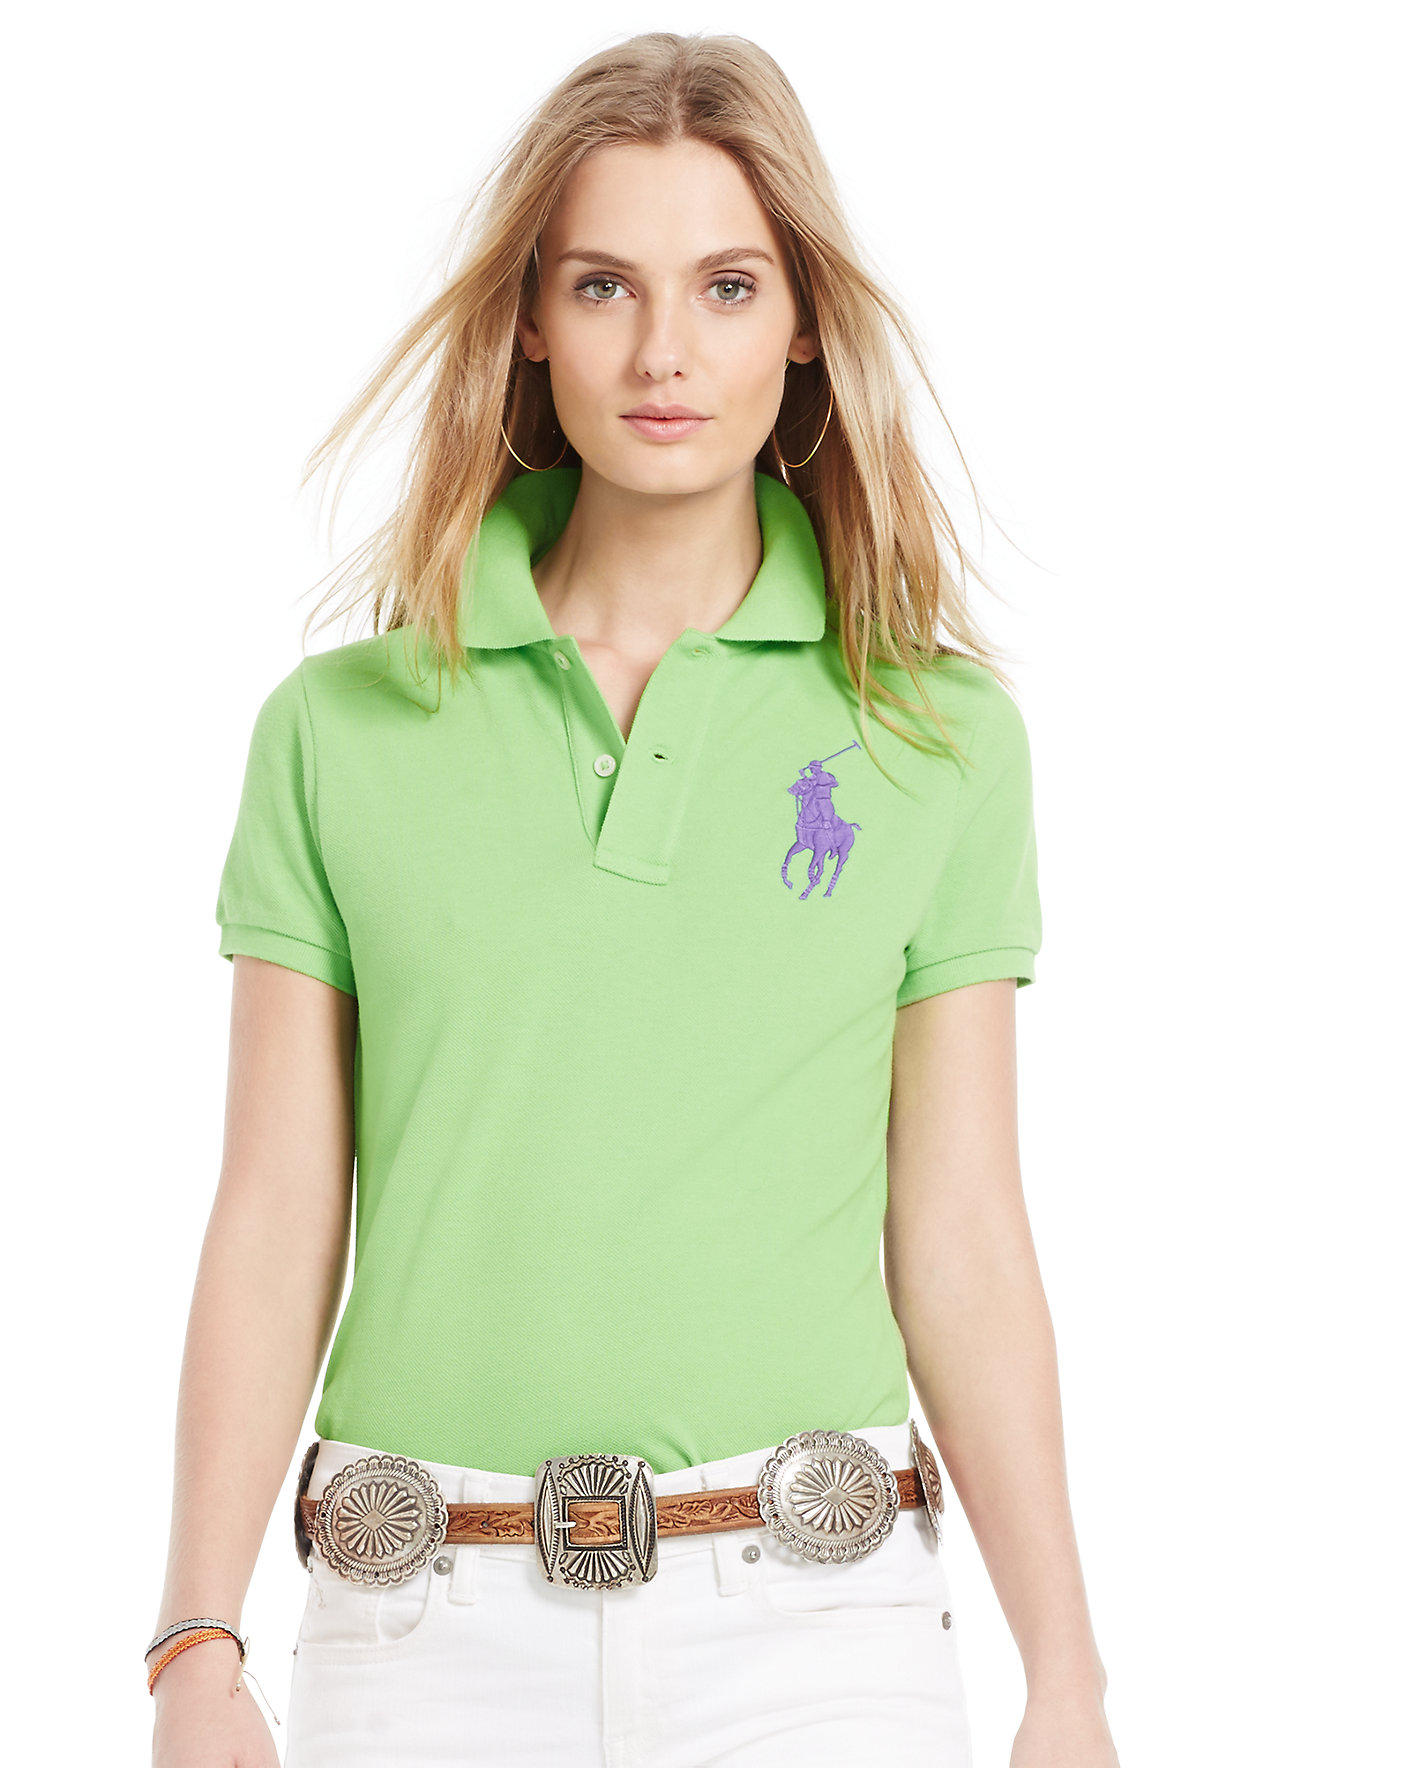 Up to 40% off Select Women's Clothing Sale @ Ralph Lauren